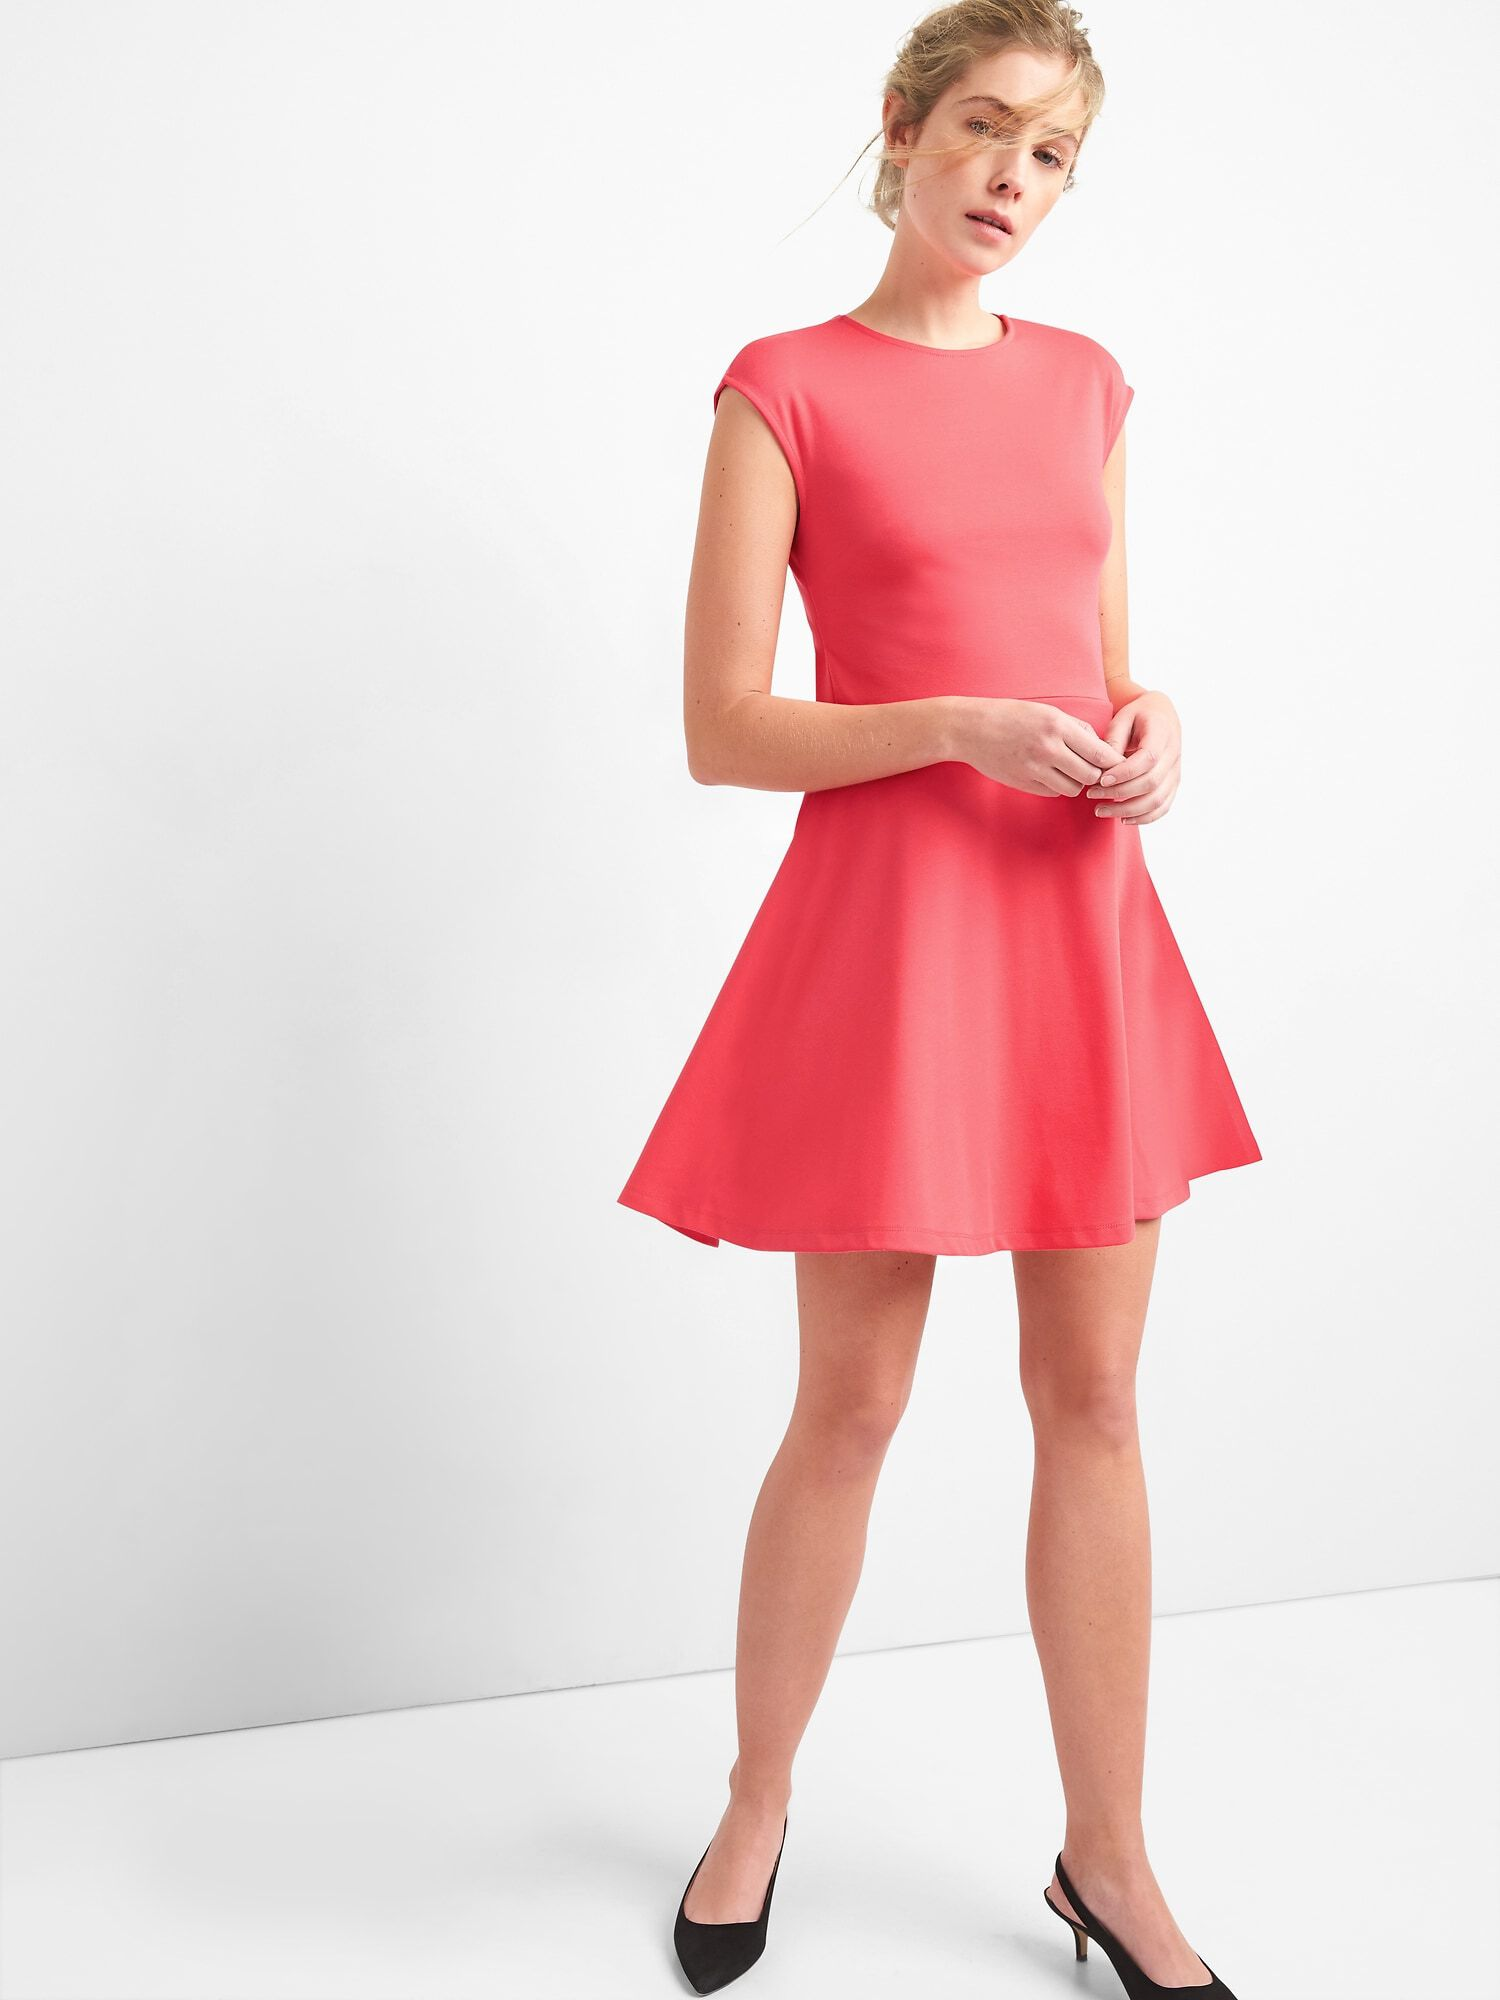 7a4da92c98 Bunny-Tie Fit and Flare Dress in Ponte